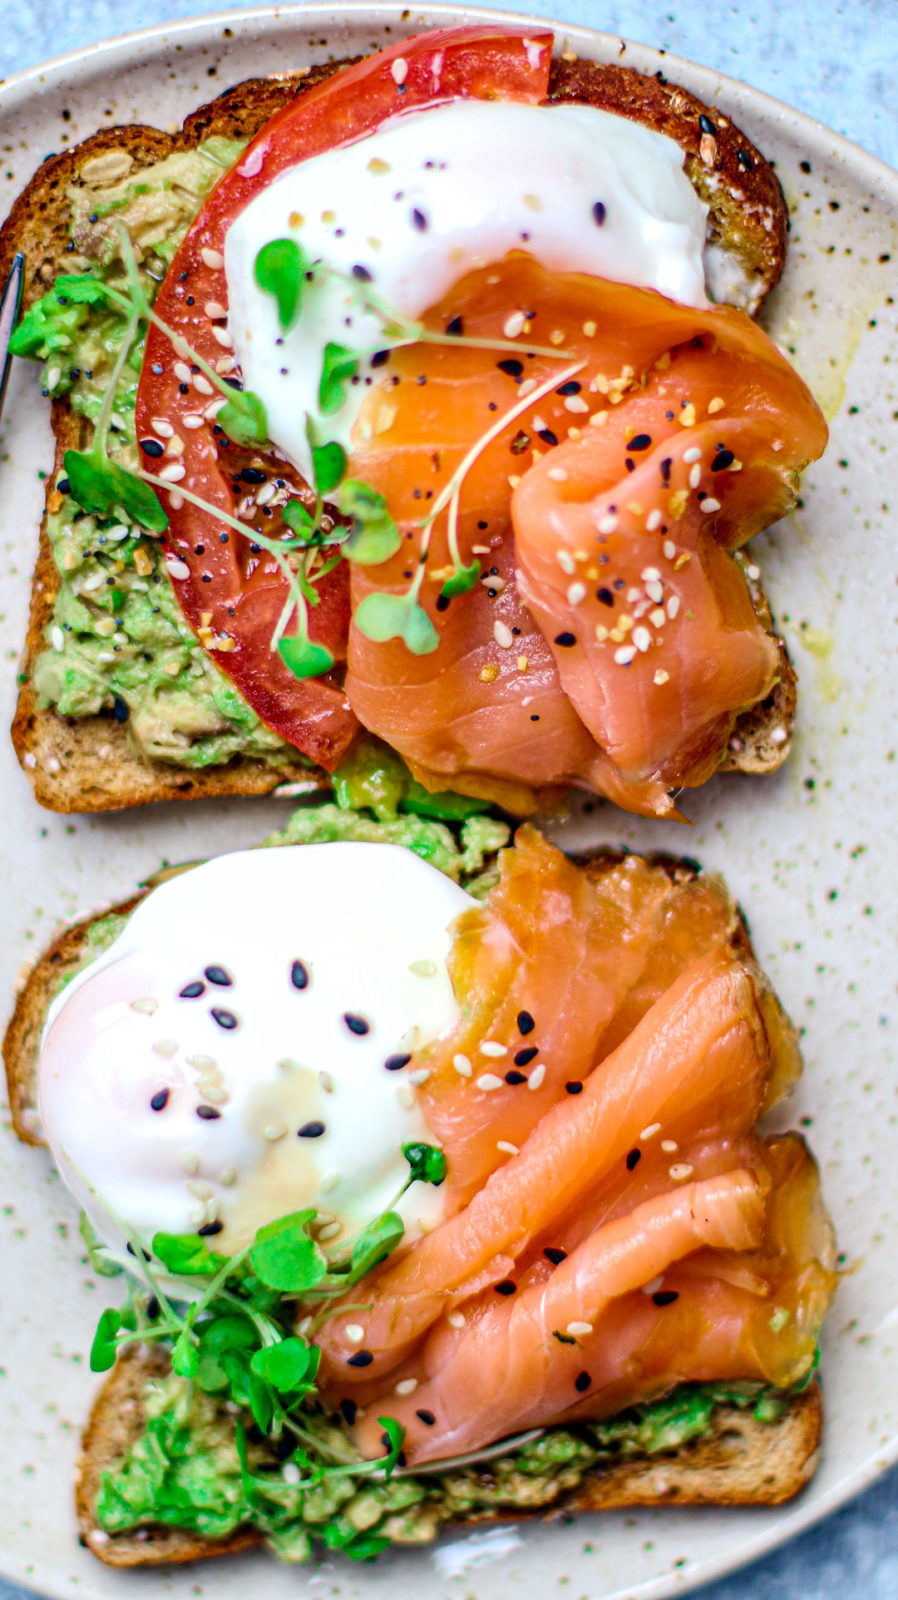 Smoked-Salmon-and-Poached-Eggs-2-898x1600